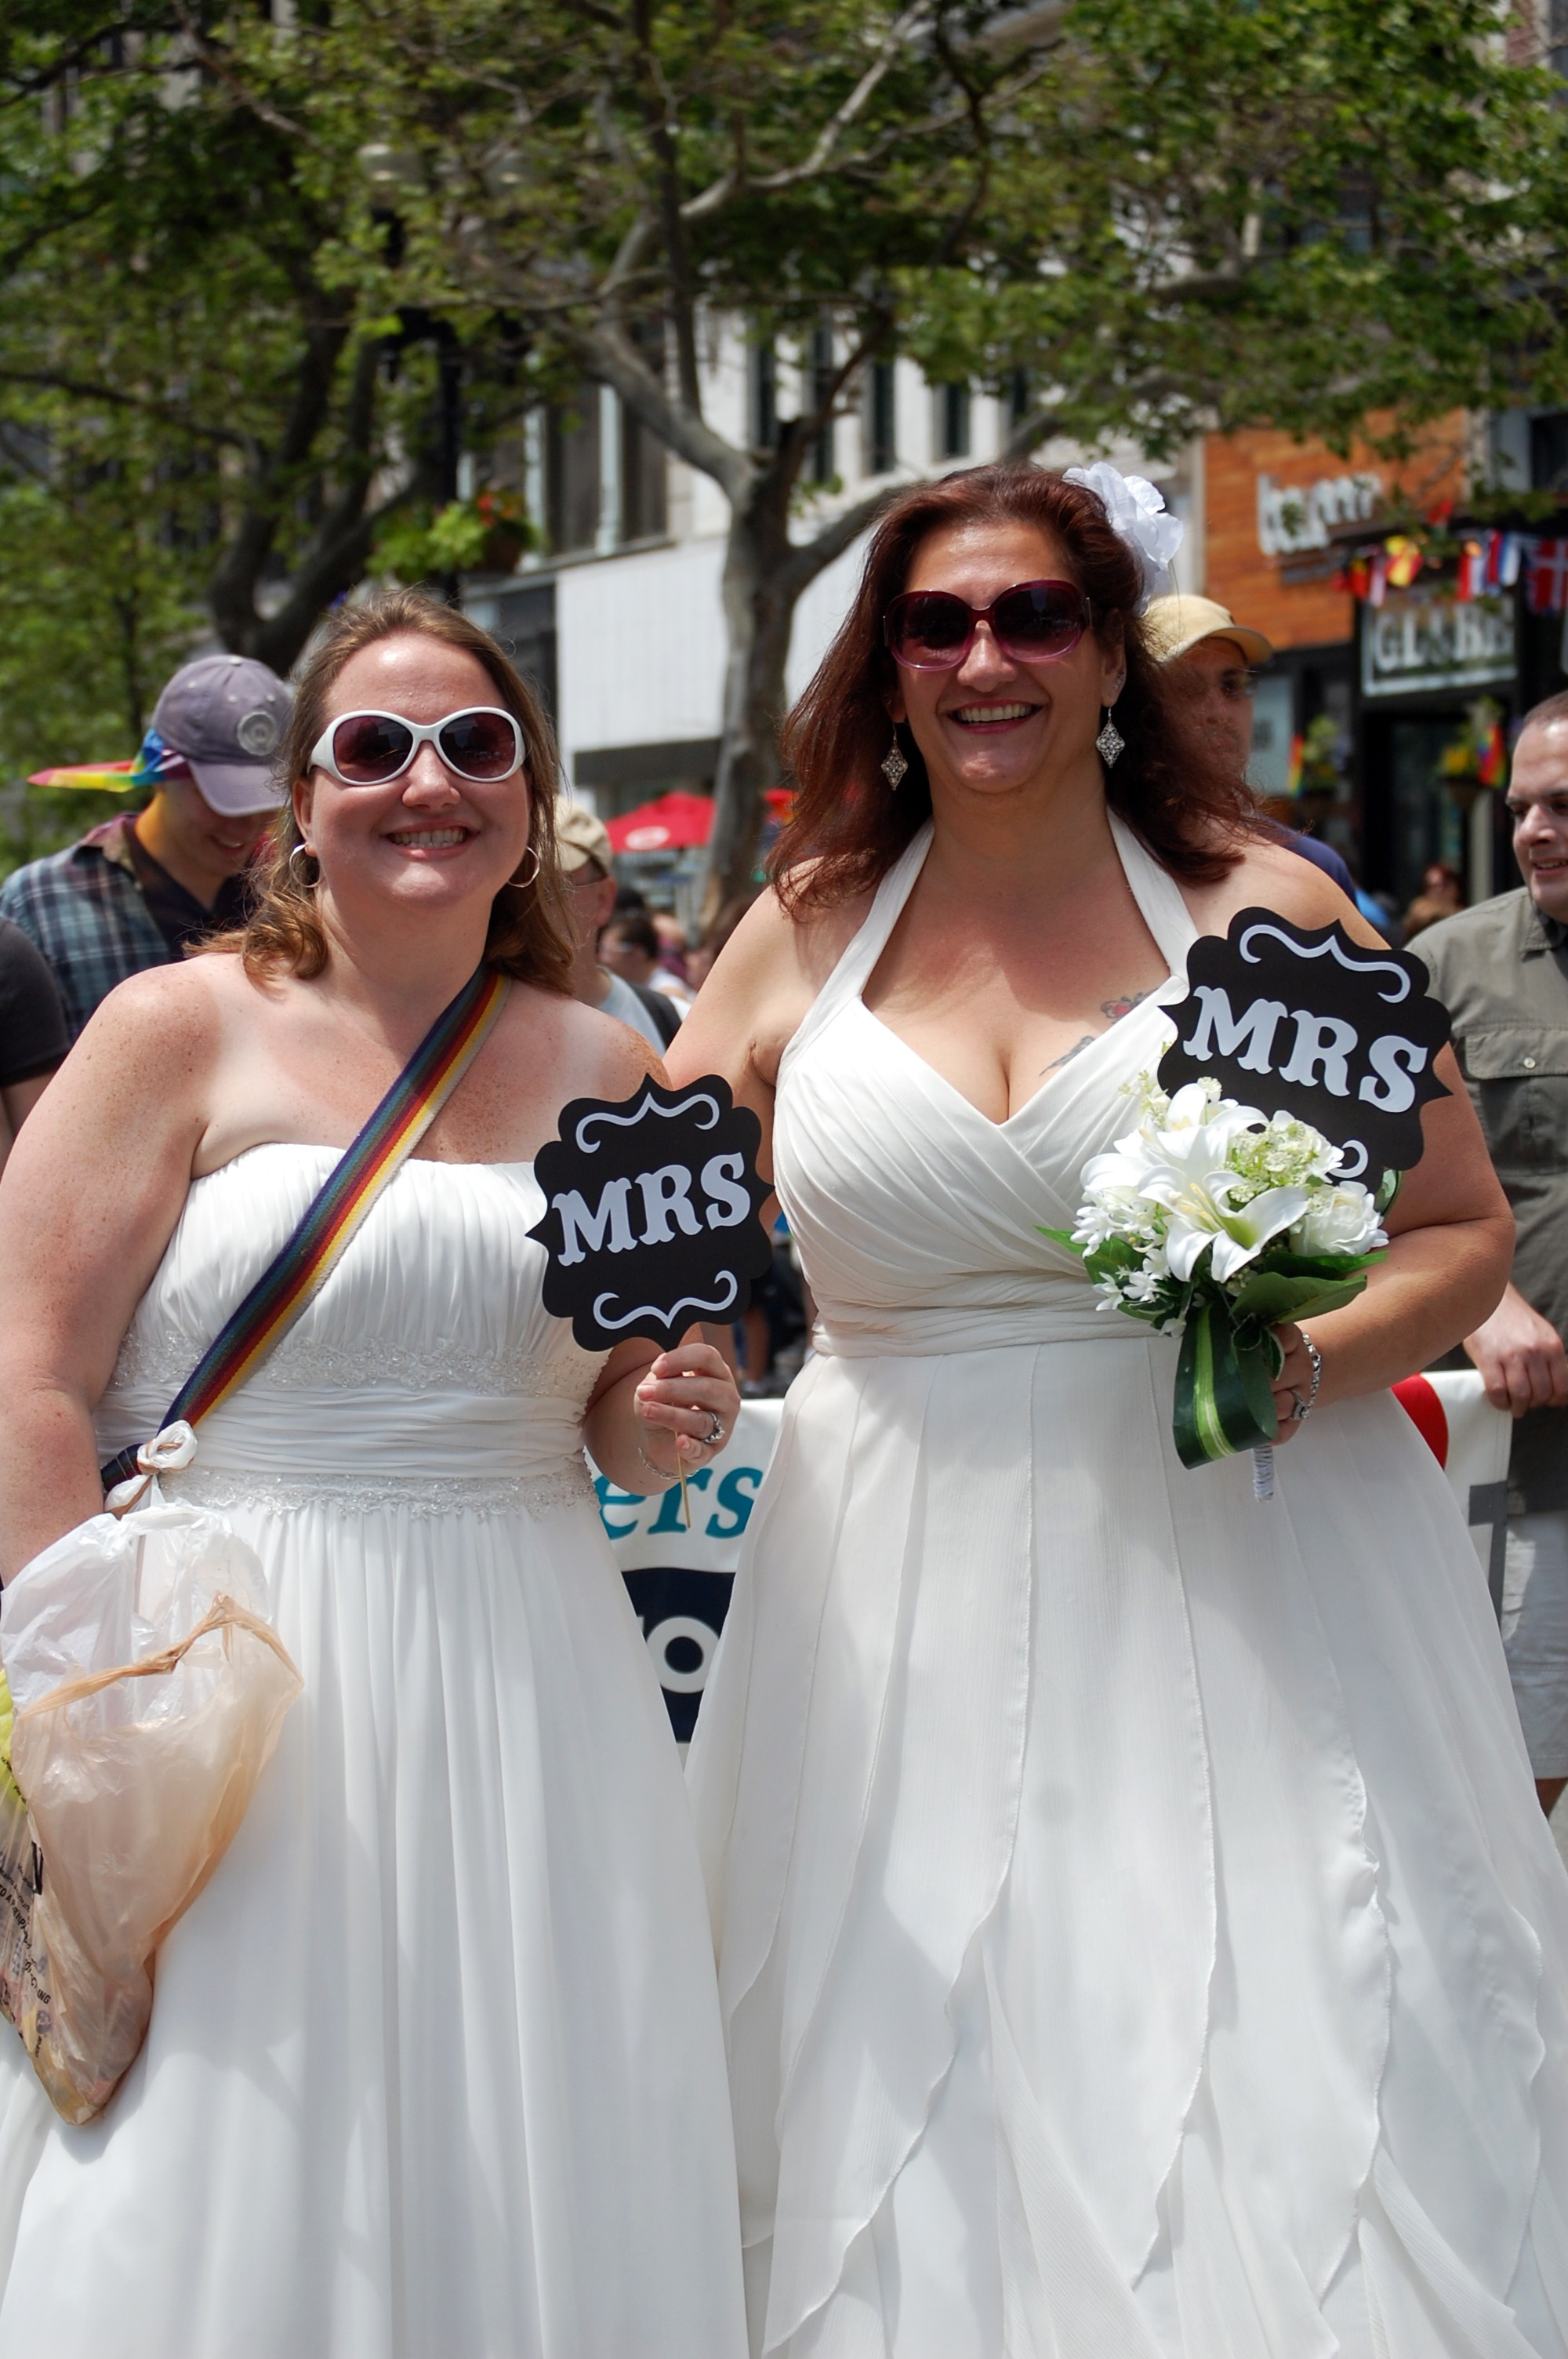 A newlywed couple marches in the Boston Pride Parade in their wedding gowns.